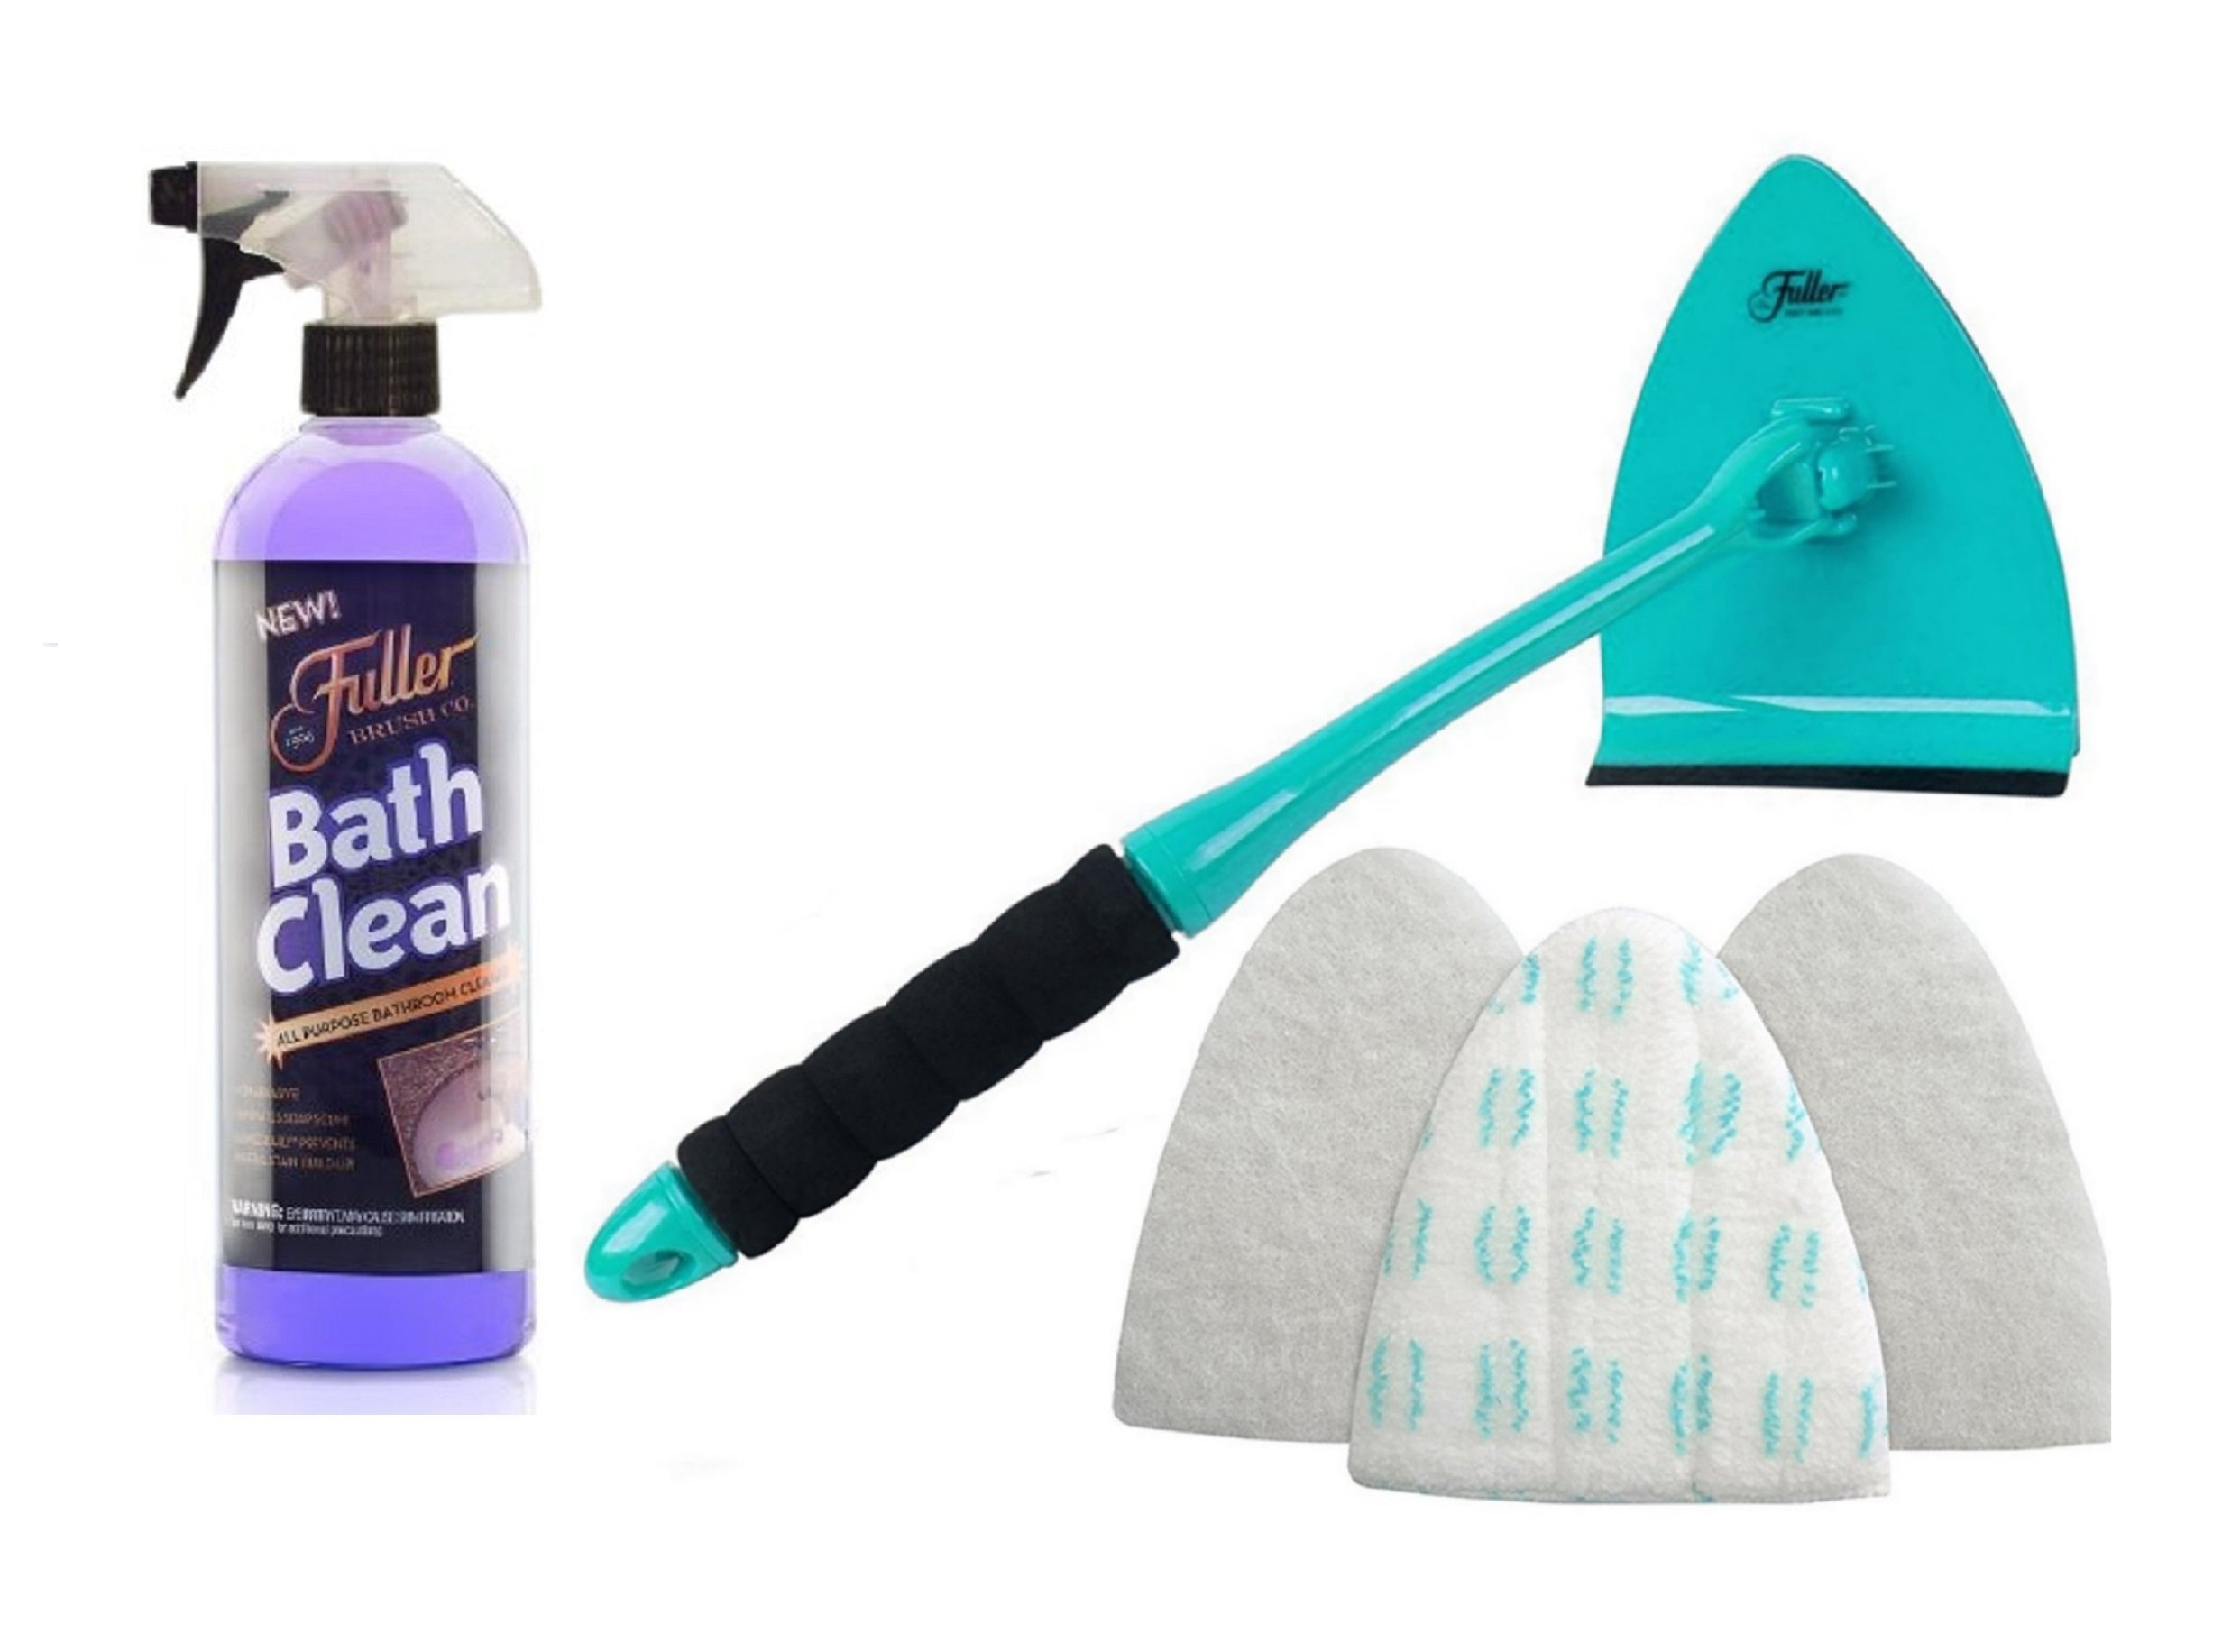 Fuller Brush BathClean Tile and Bathroom Scrubbing Kit with Big EZ Bath Scrubber & Squeege by Fuller Brush (Image #1)